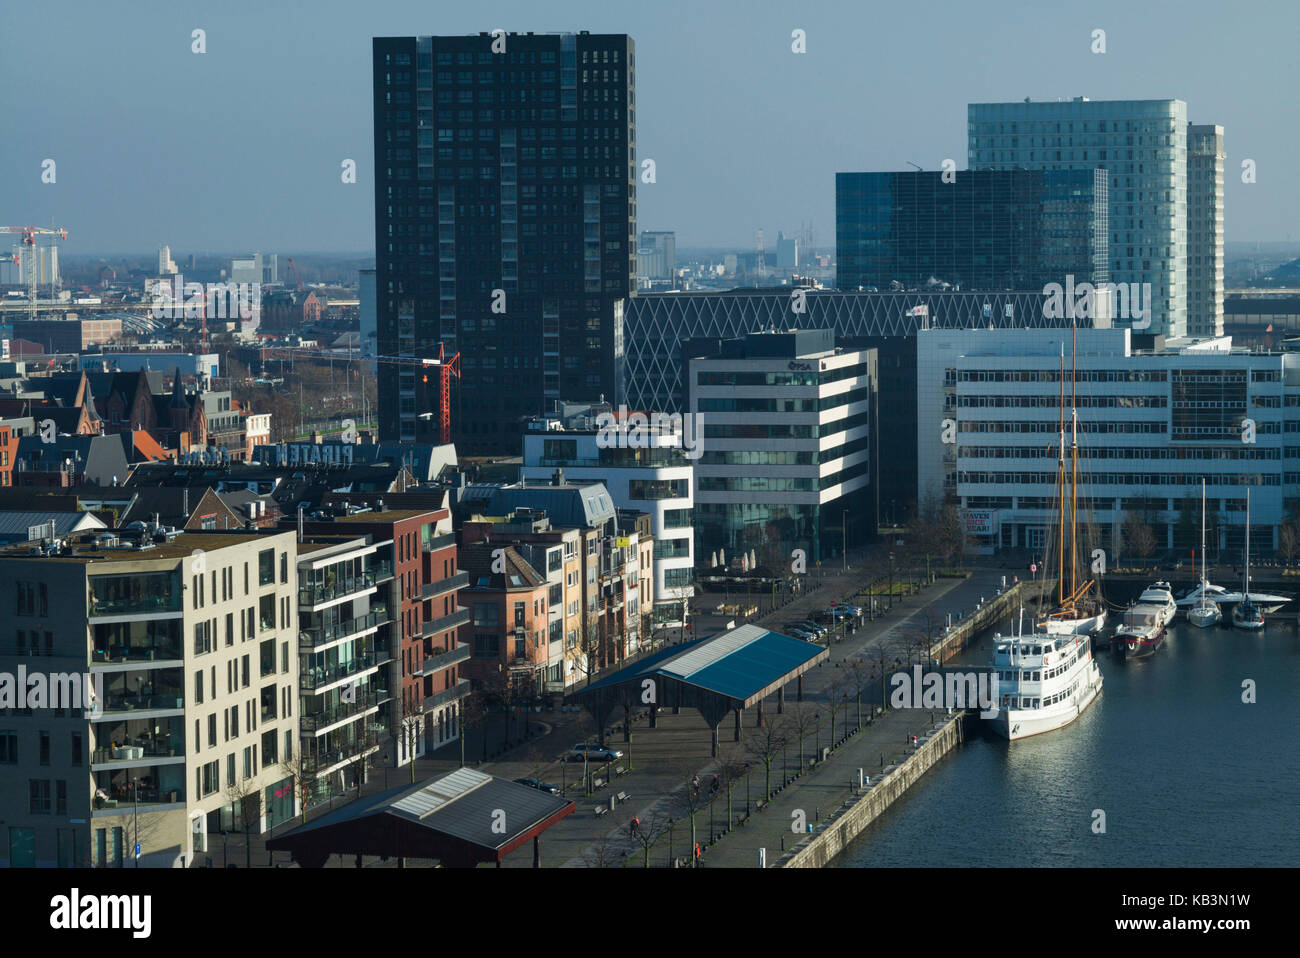 Belgium, Antwerp, elevated view of the newly renovated 't Eilandje docklands - Stock Image